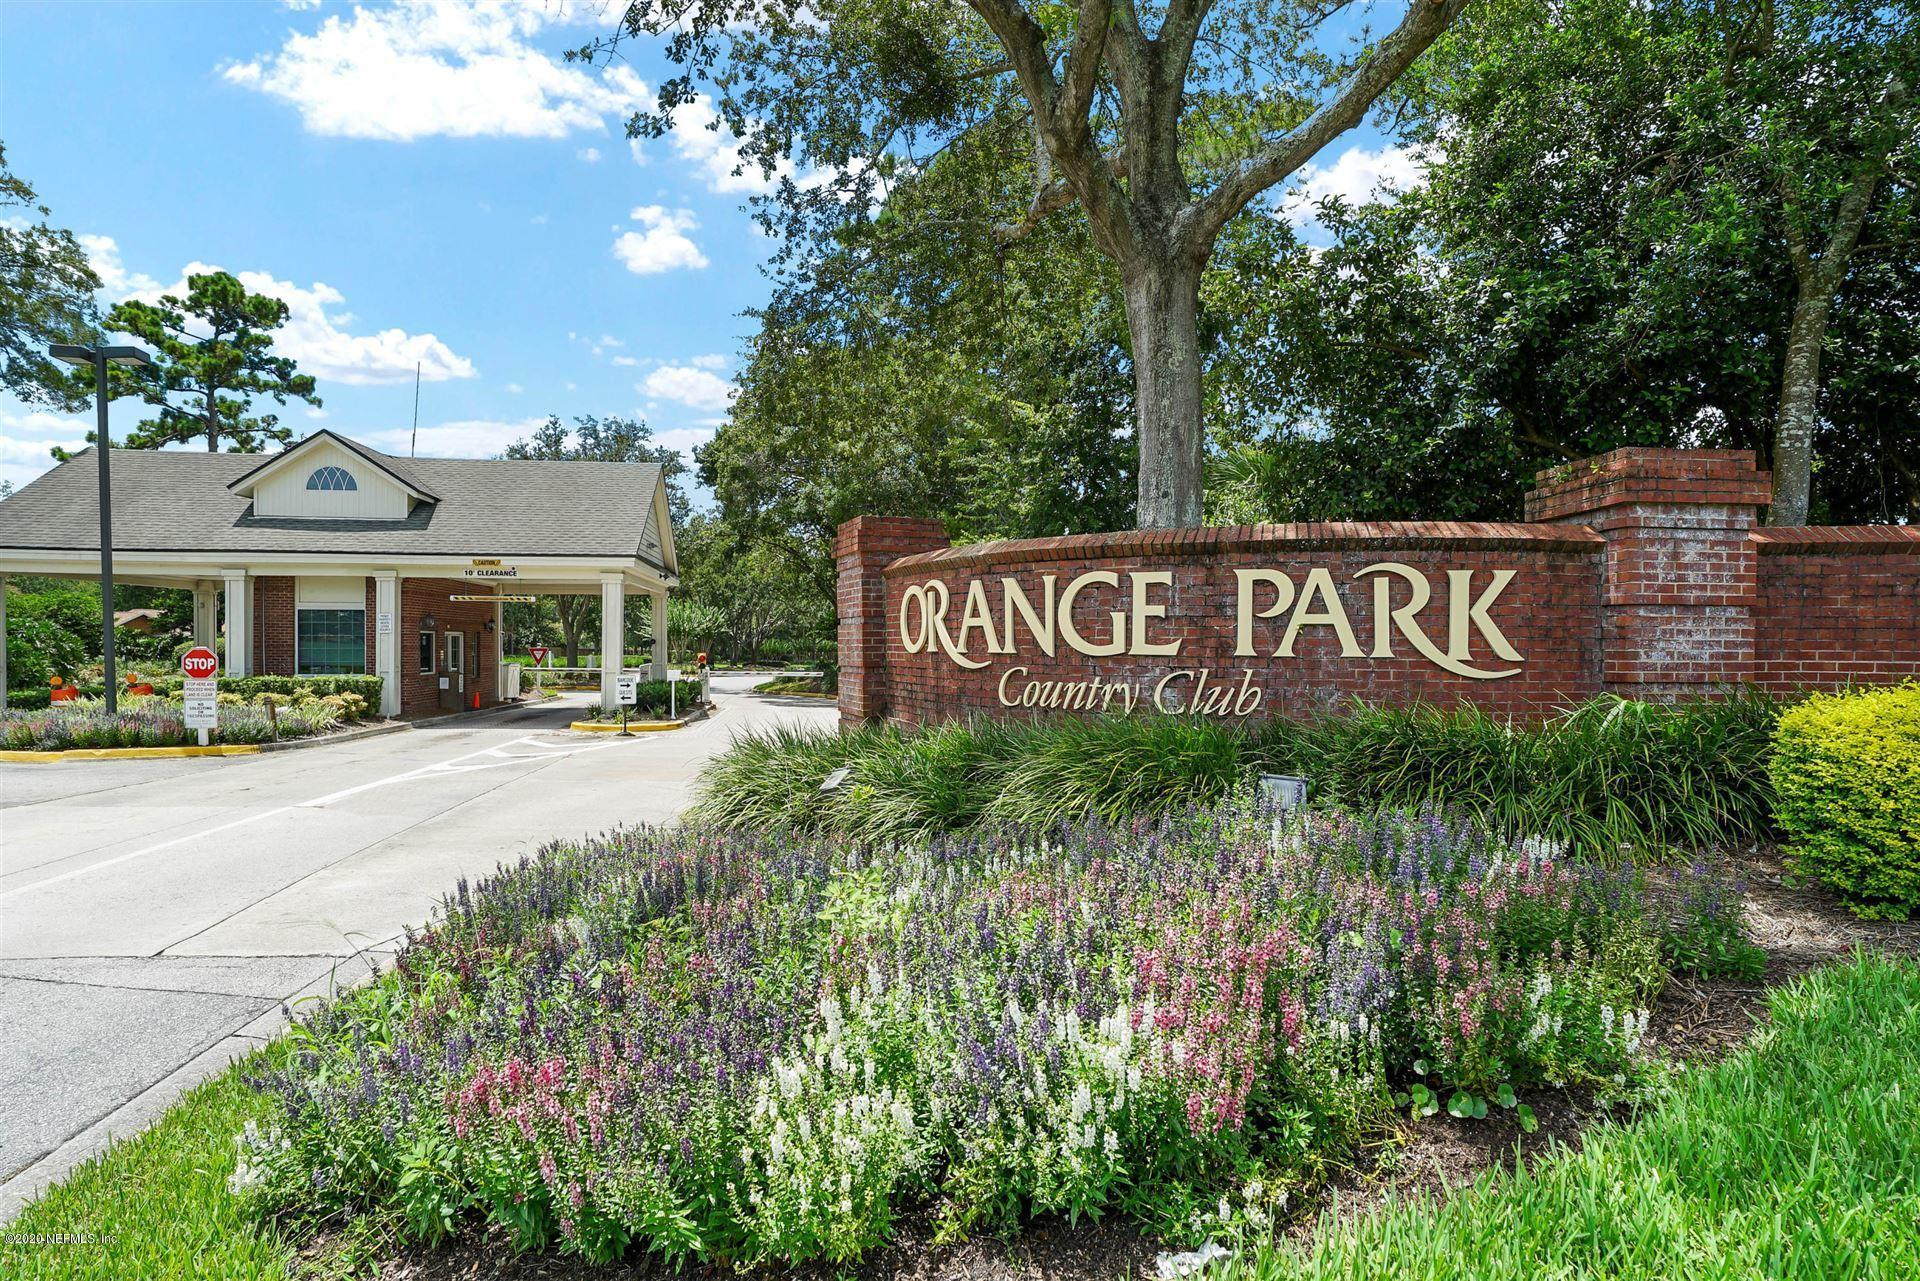 2552 STERLING OAKS CT, ORANGE PARK, Florida 32073, ,Lots And Land,For Sale,2552 STERLING OAKS CT,940678